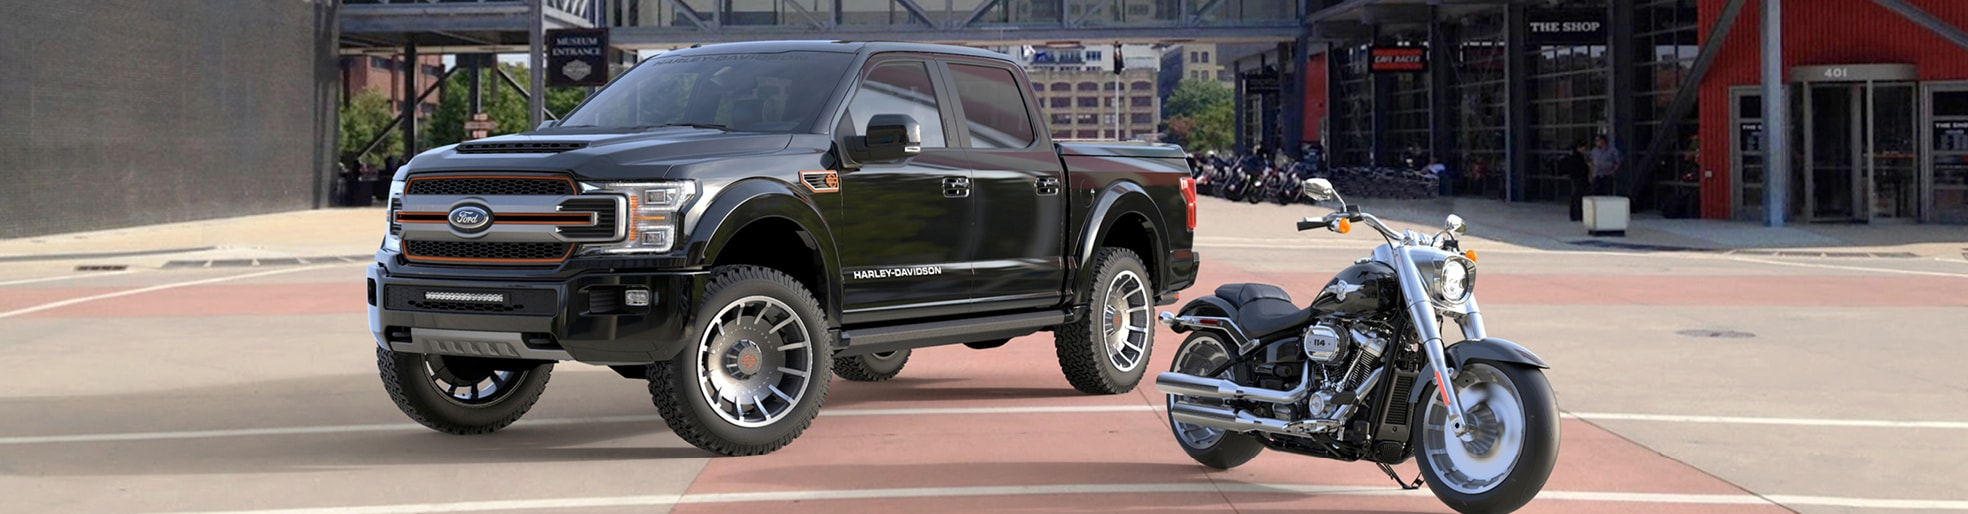 Harley Davidson Performance Trucks